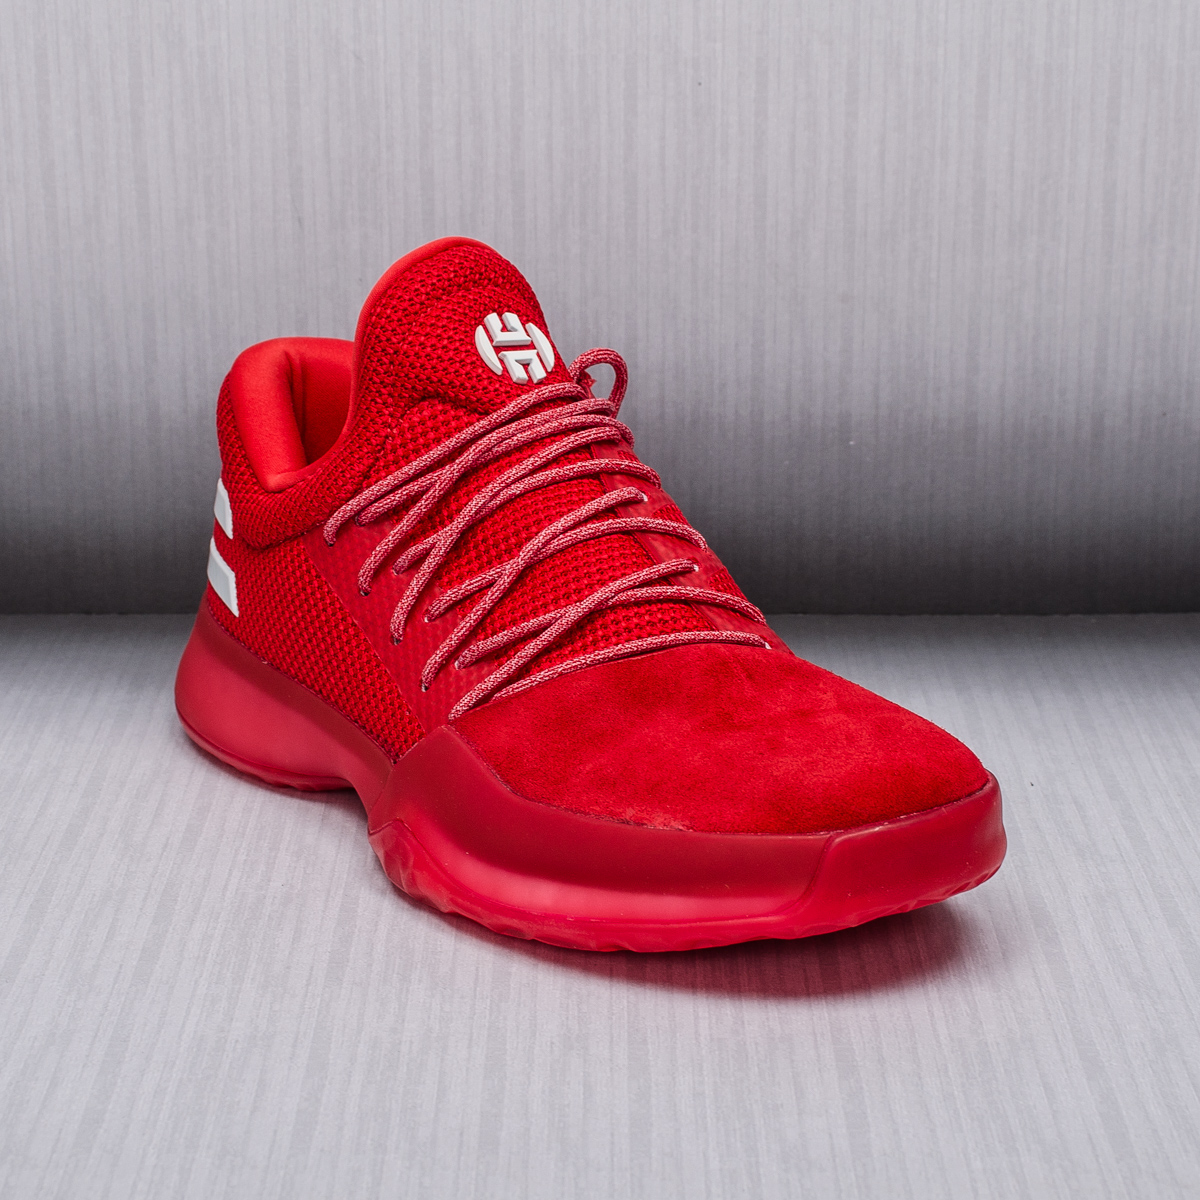 adidas Harden Vol. 1 Basketball Shoes - BASKETBALL SHOES ...